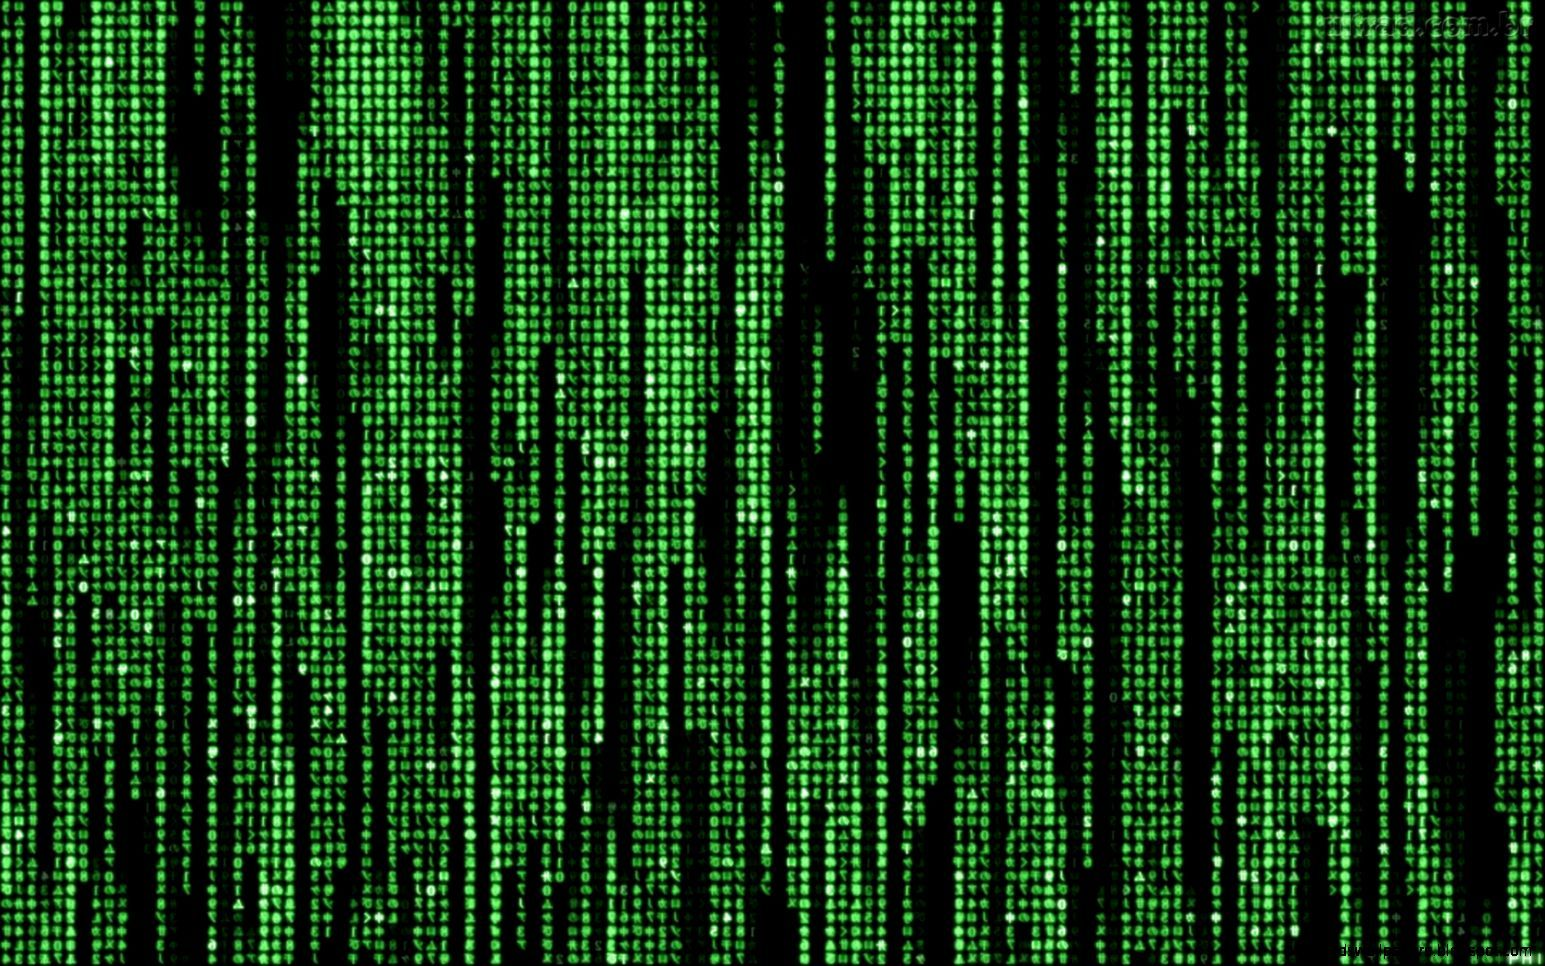 Matrix Live Wallpaper Android Apps On Google Play 1024x768 The Wallpapers 22